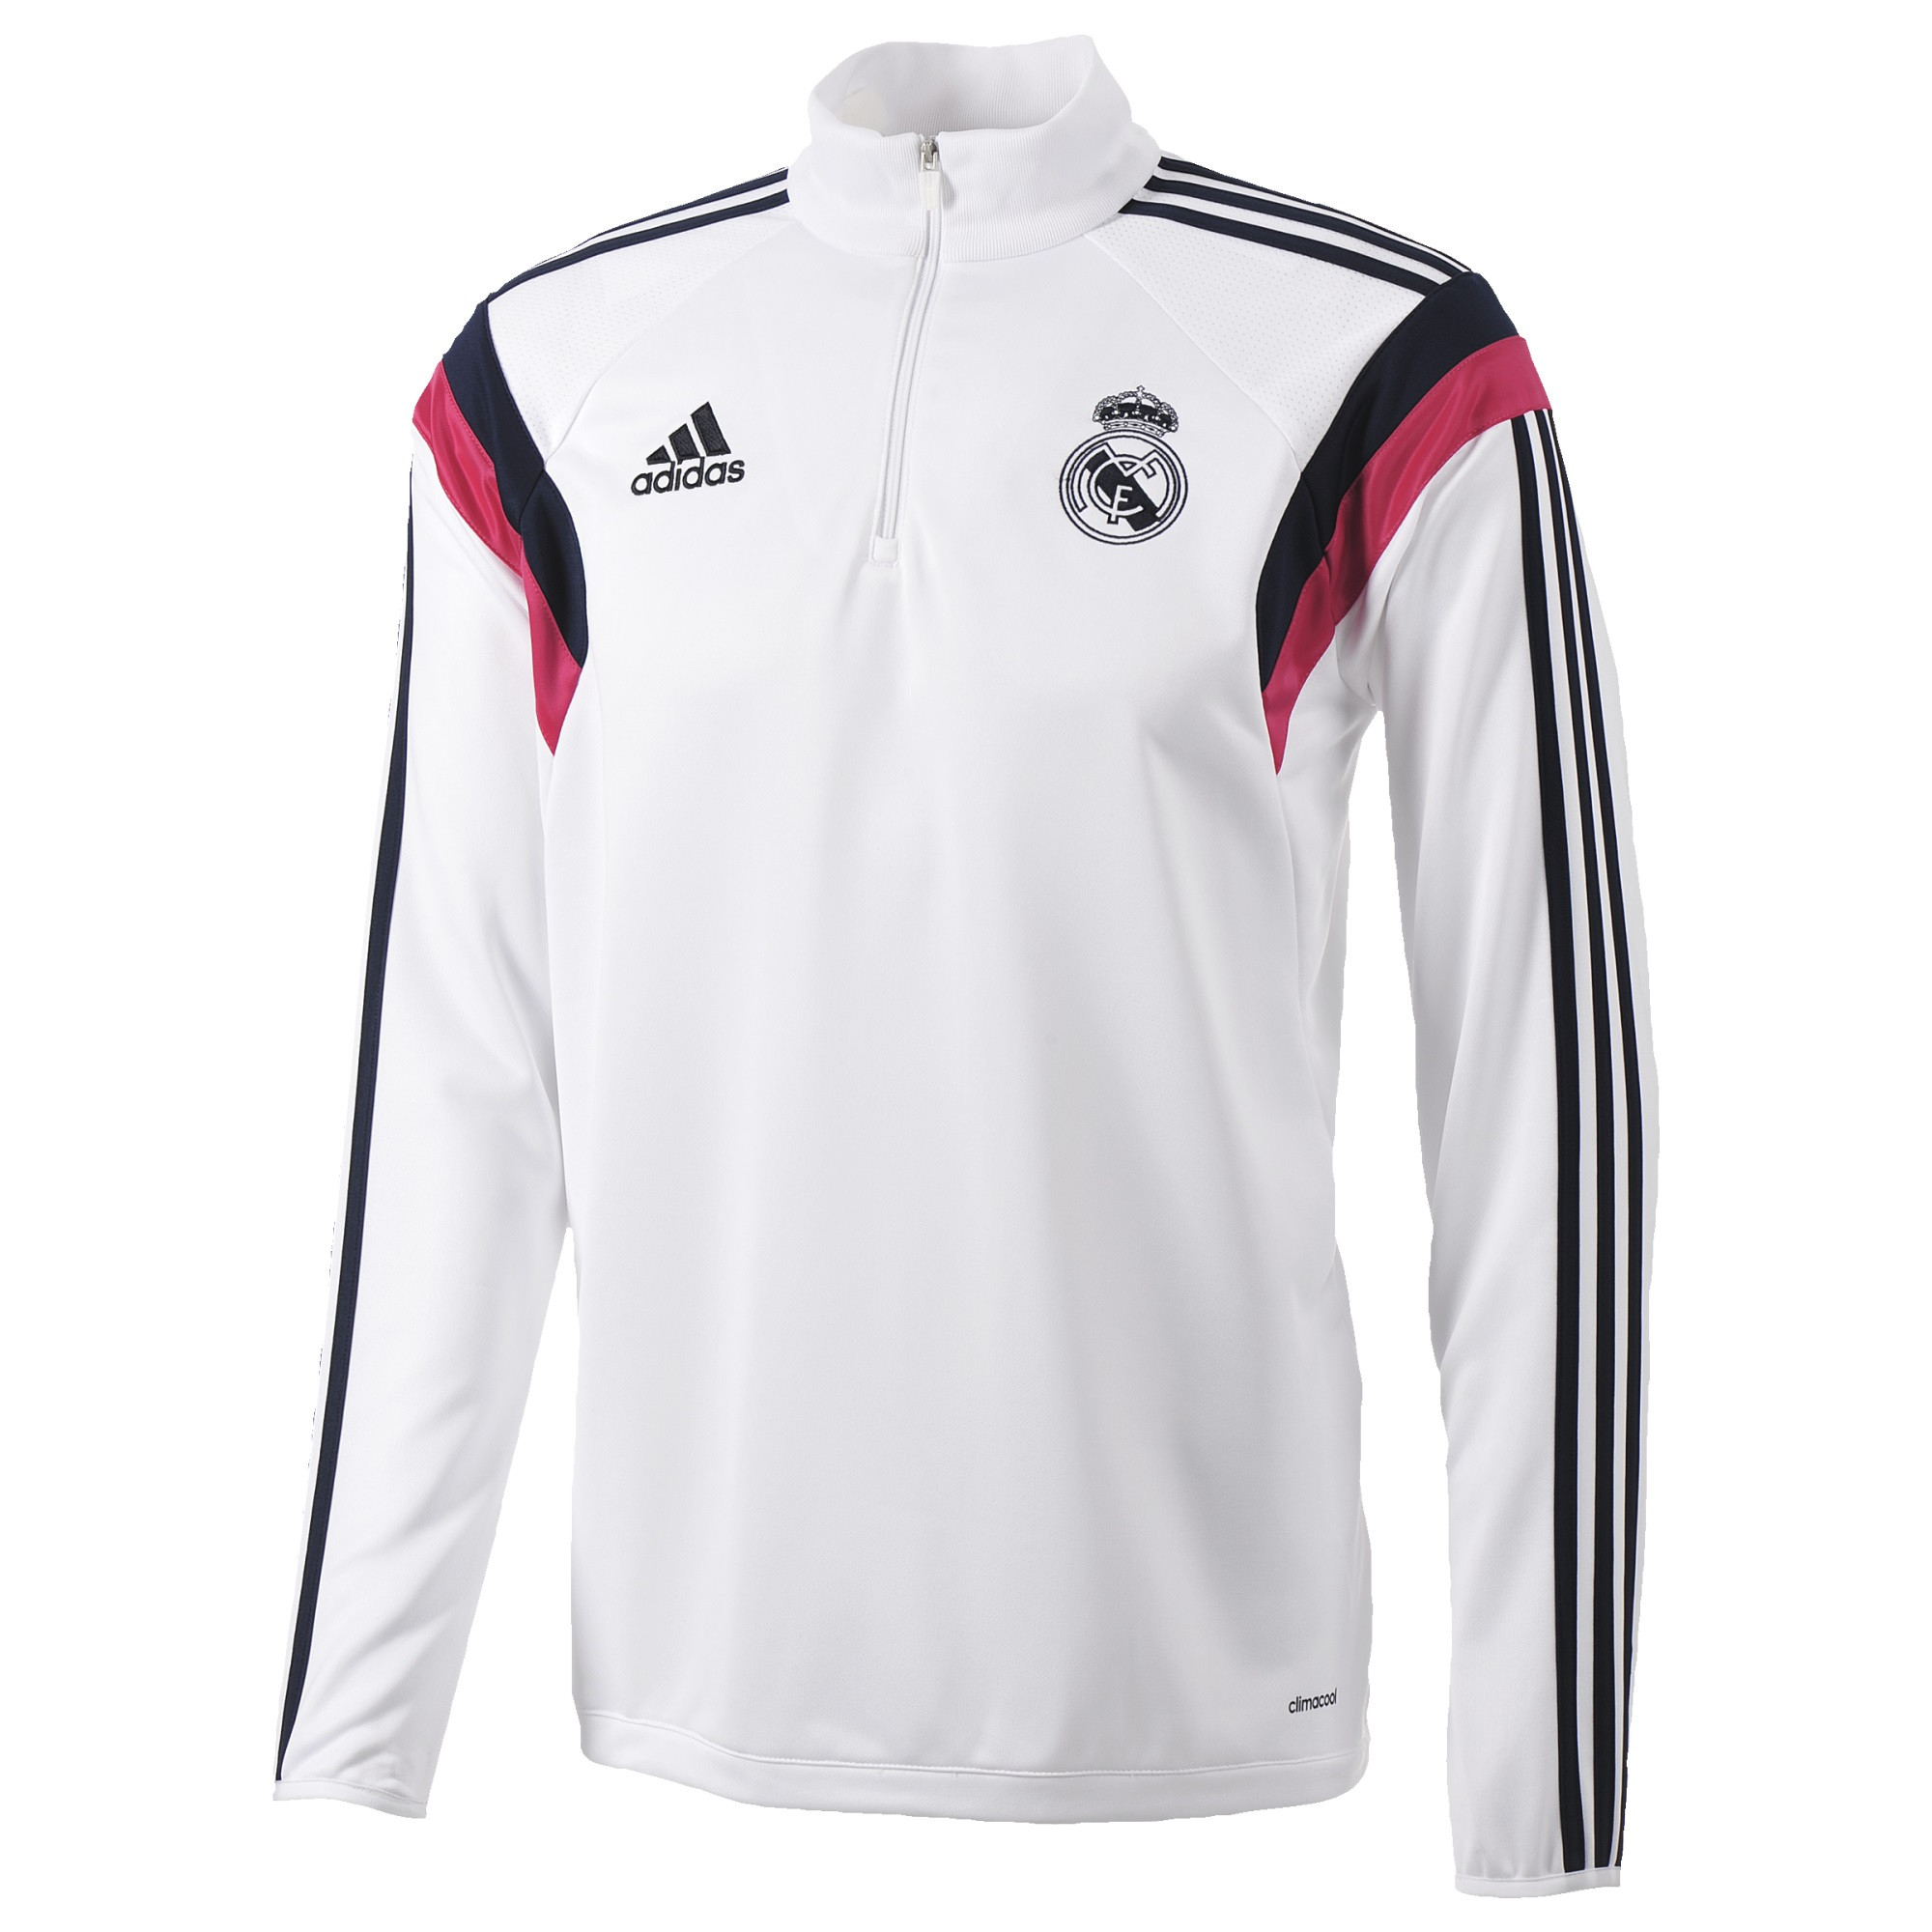 ADIDAS REAL TRAINING TOP BLANC 201415 Sweat entrainement